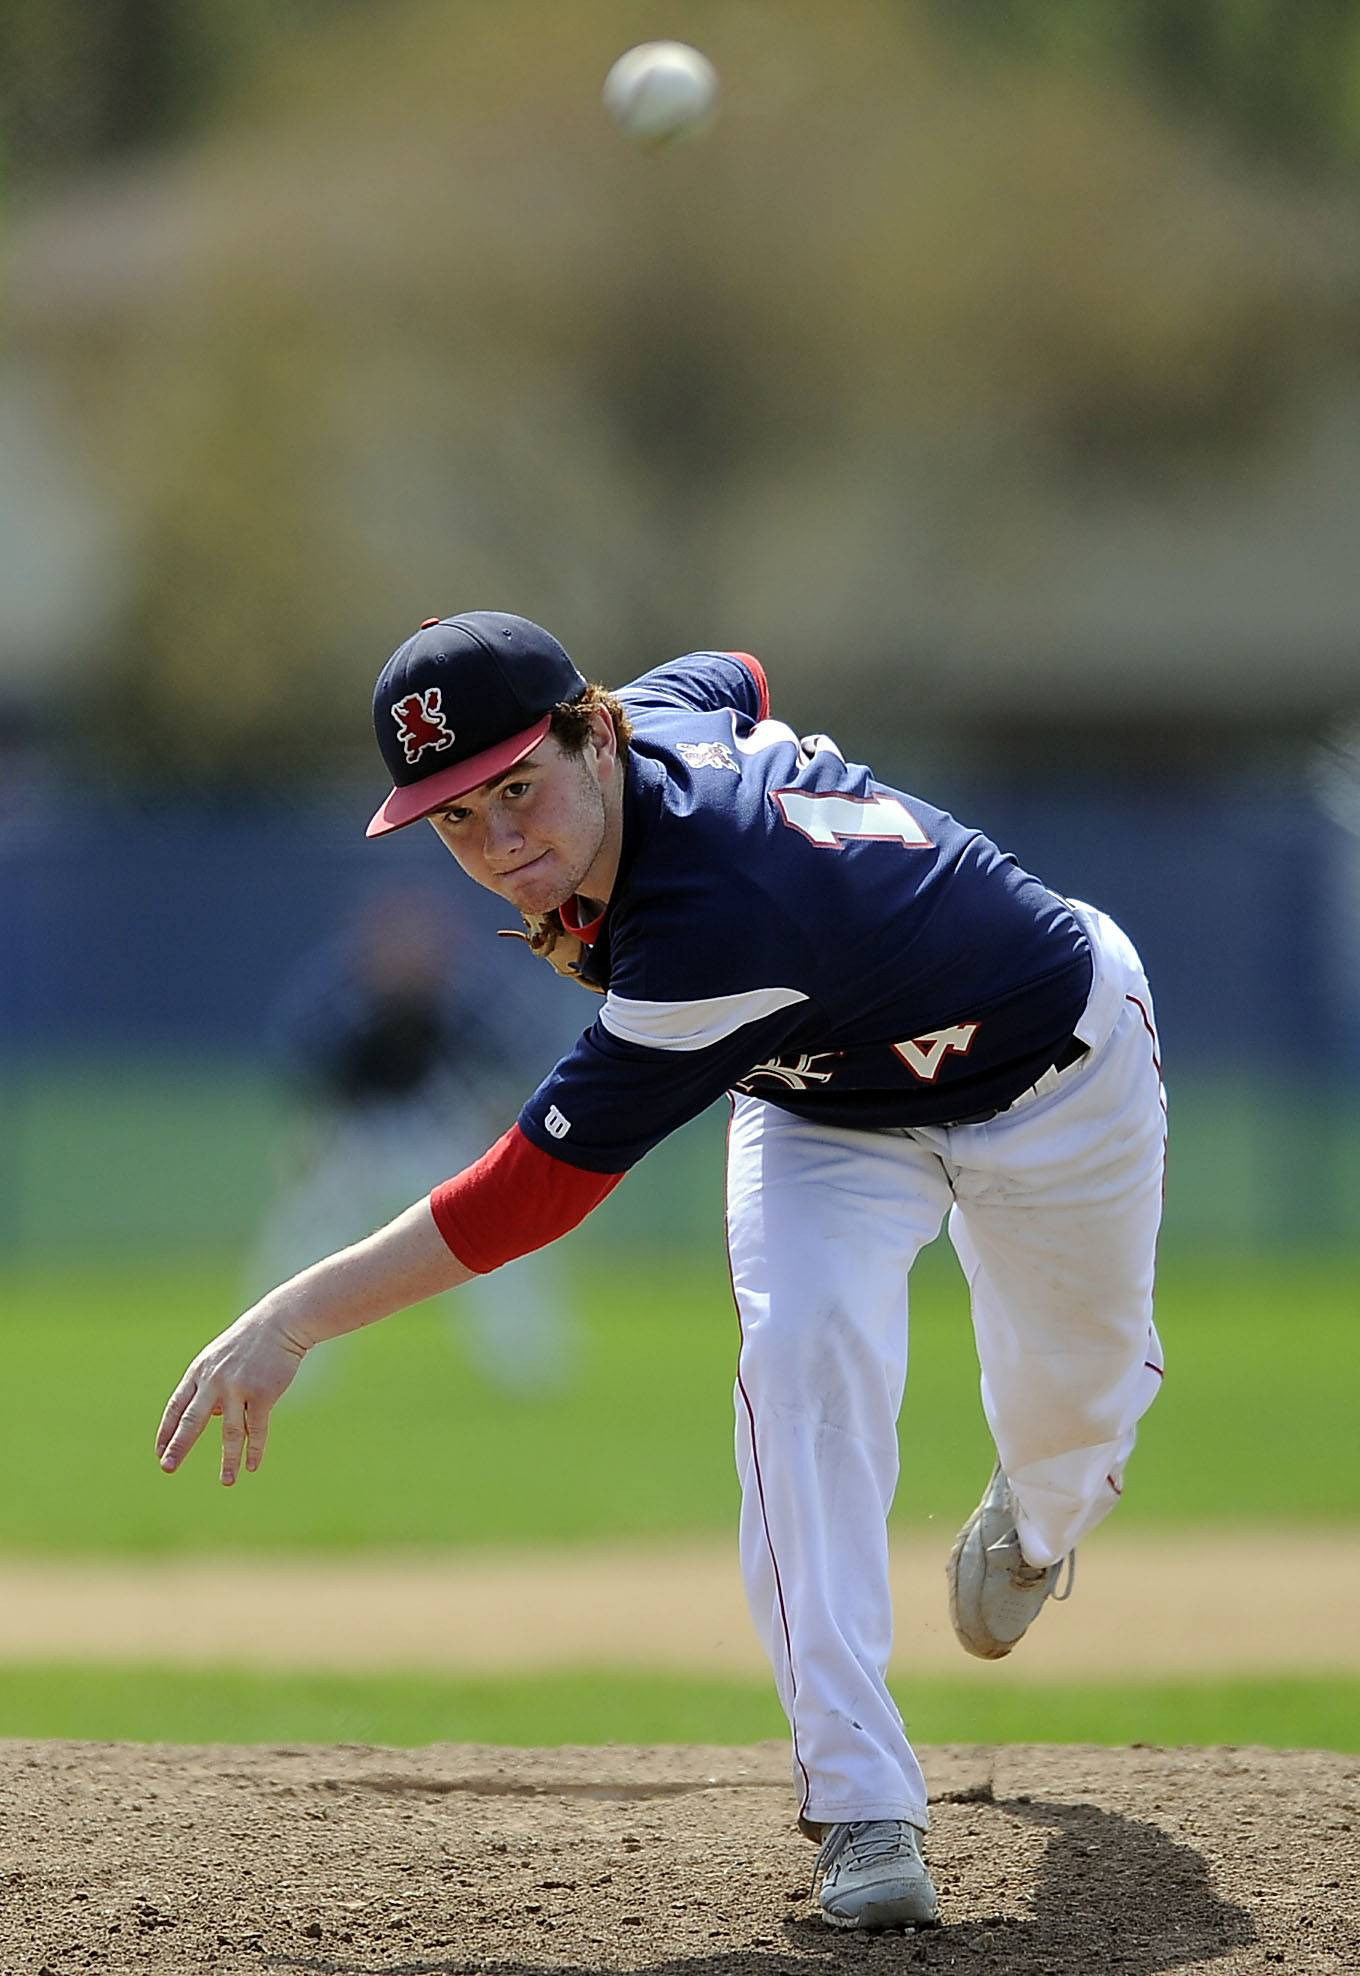 St. Viator's pitcher Mike Piet delivers against host Prospect on Saturday.